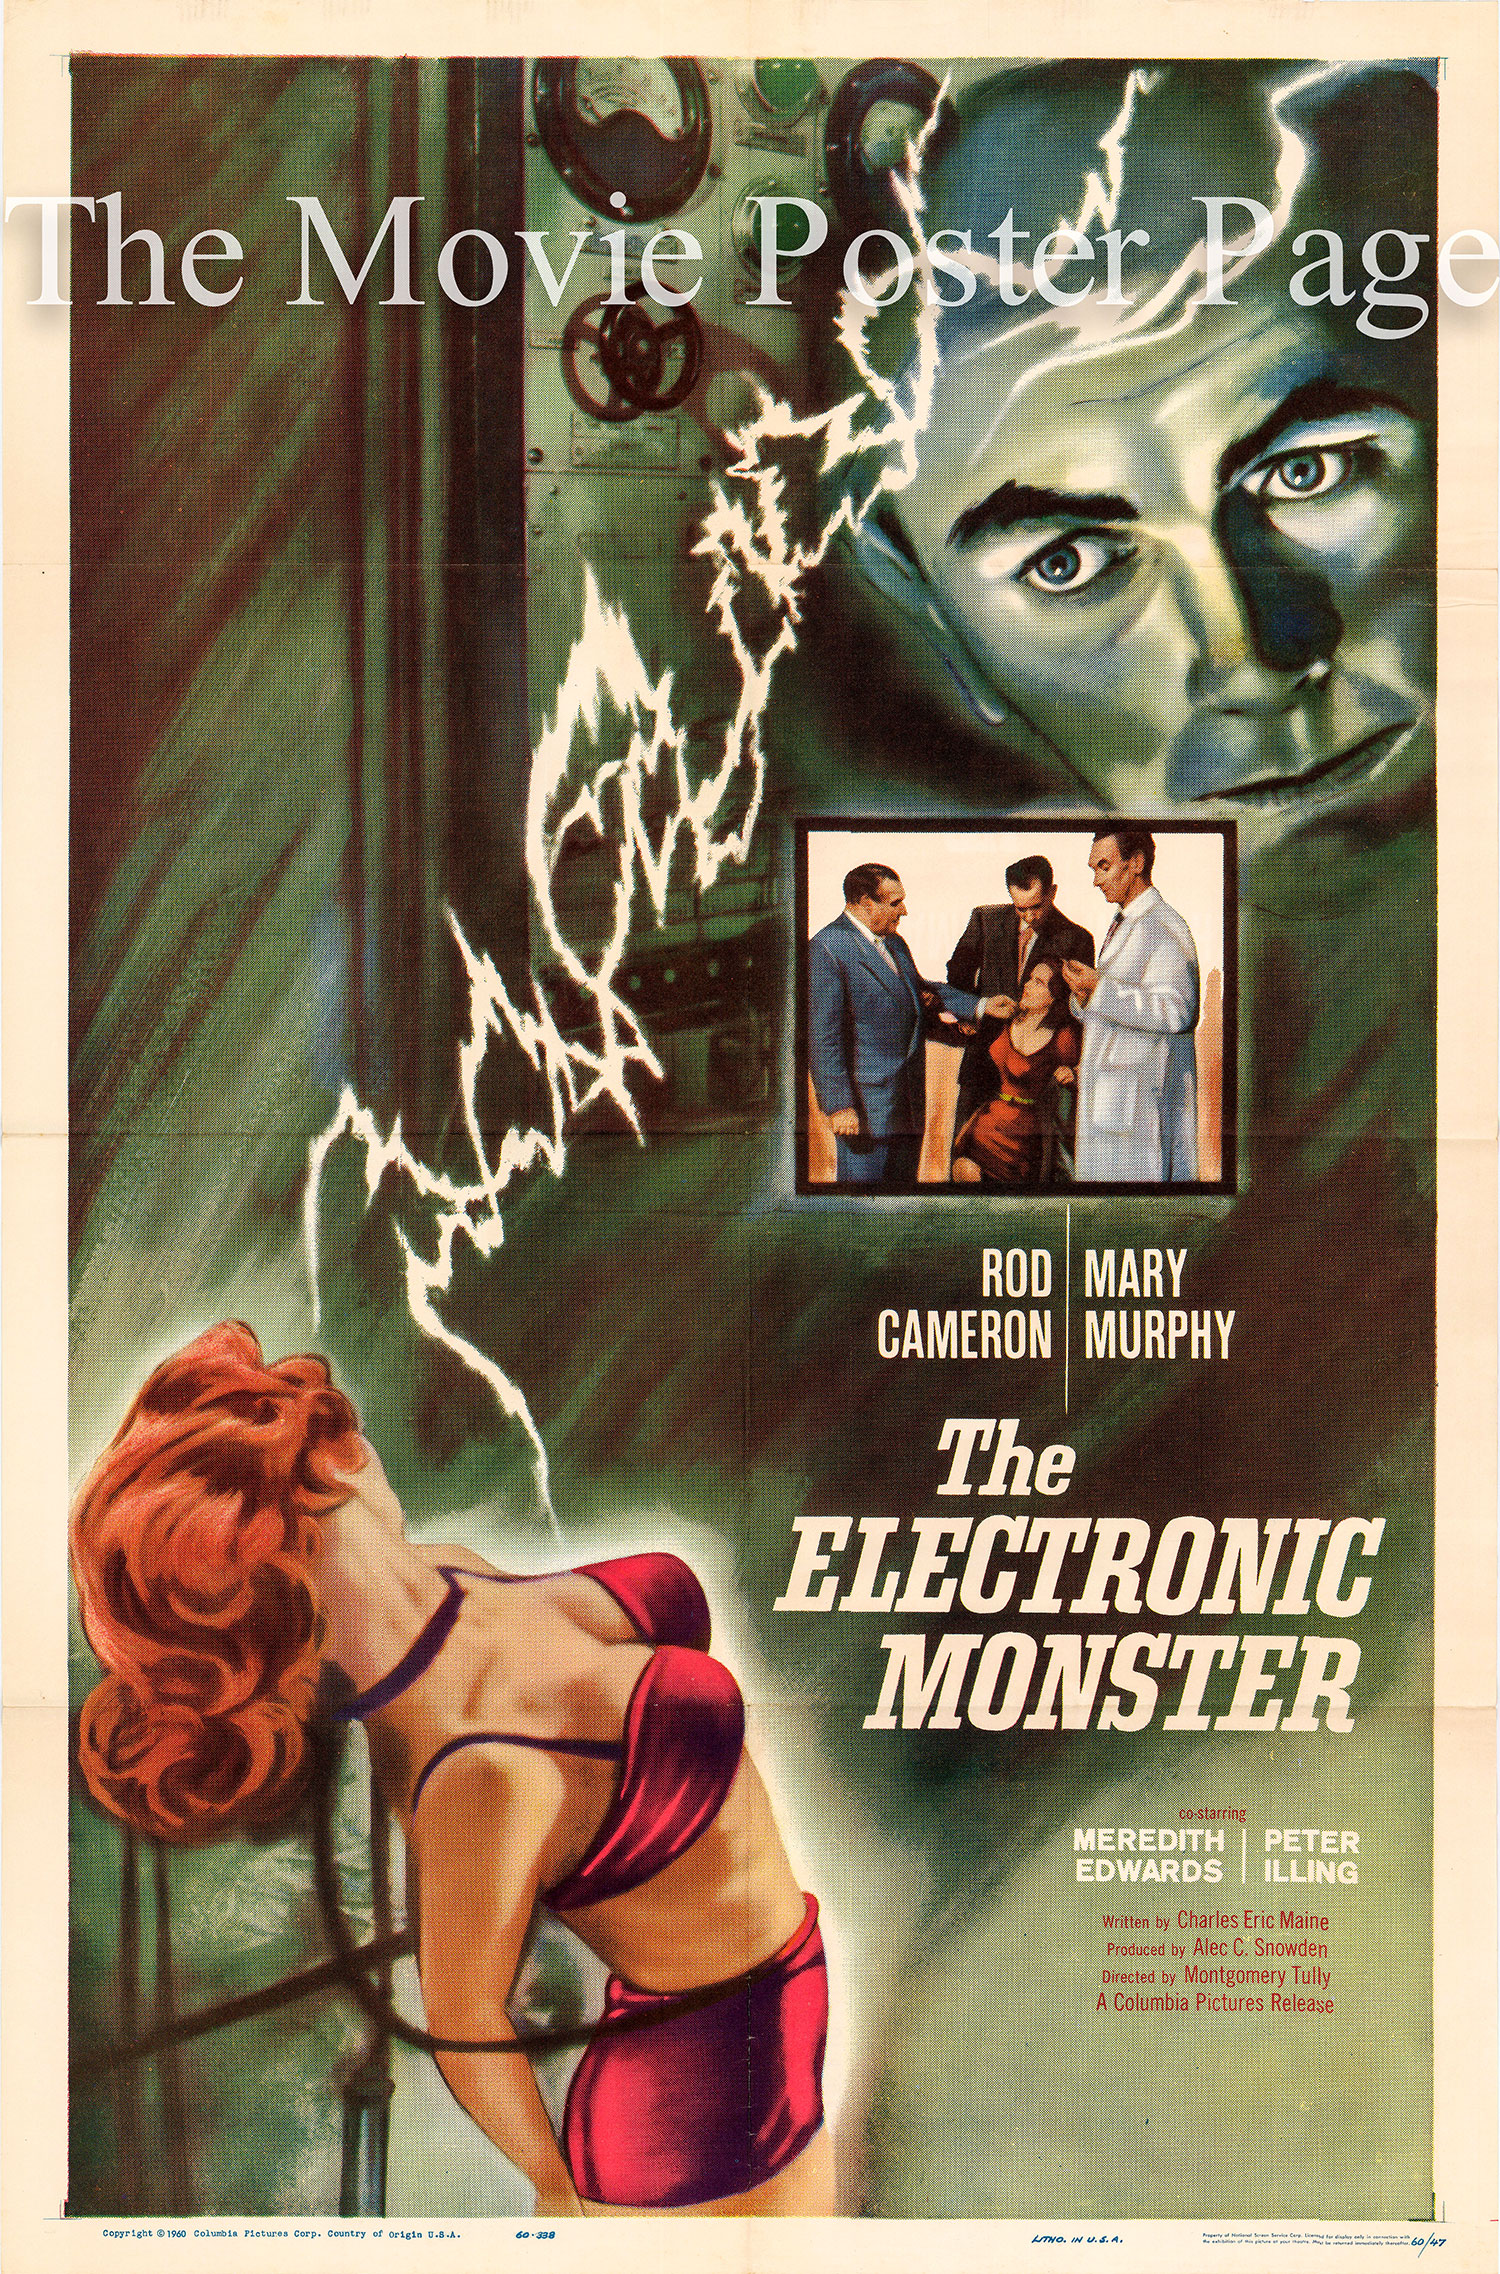 Pictured is a US one-sheet promotional poster for the 1960 Montgomery Tully film The Electronic Monster starring Rod Cameron.